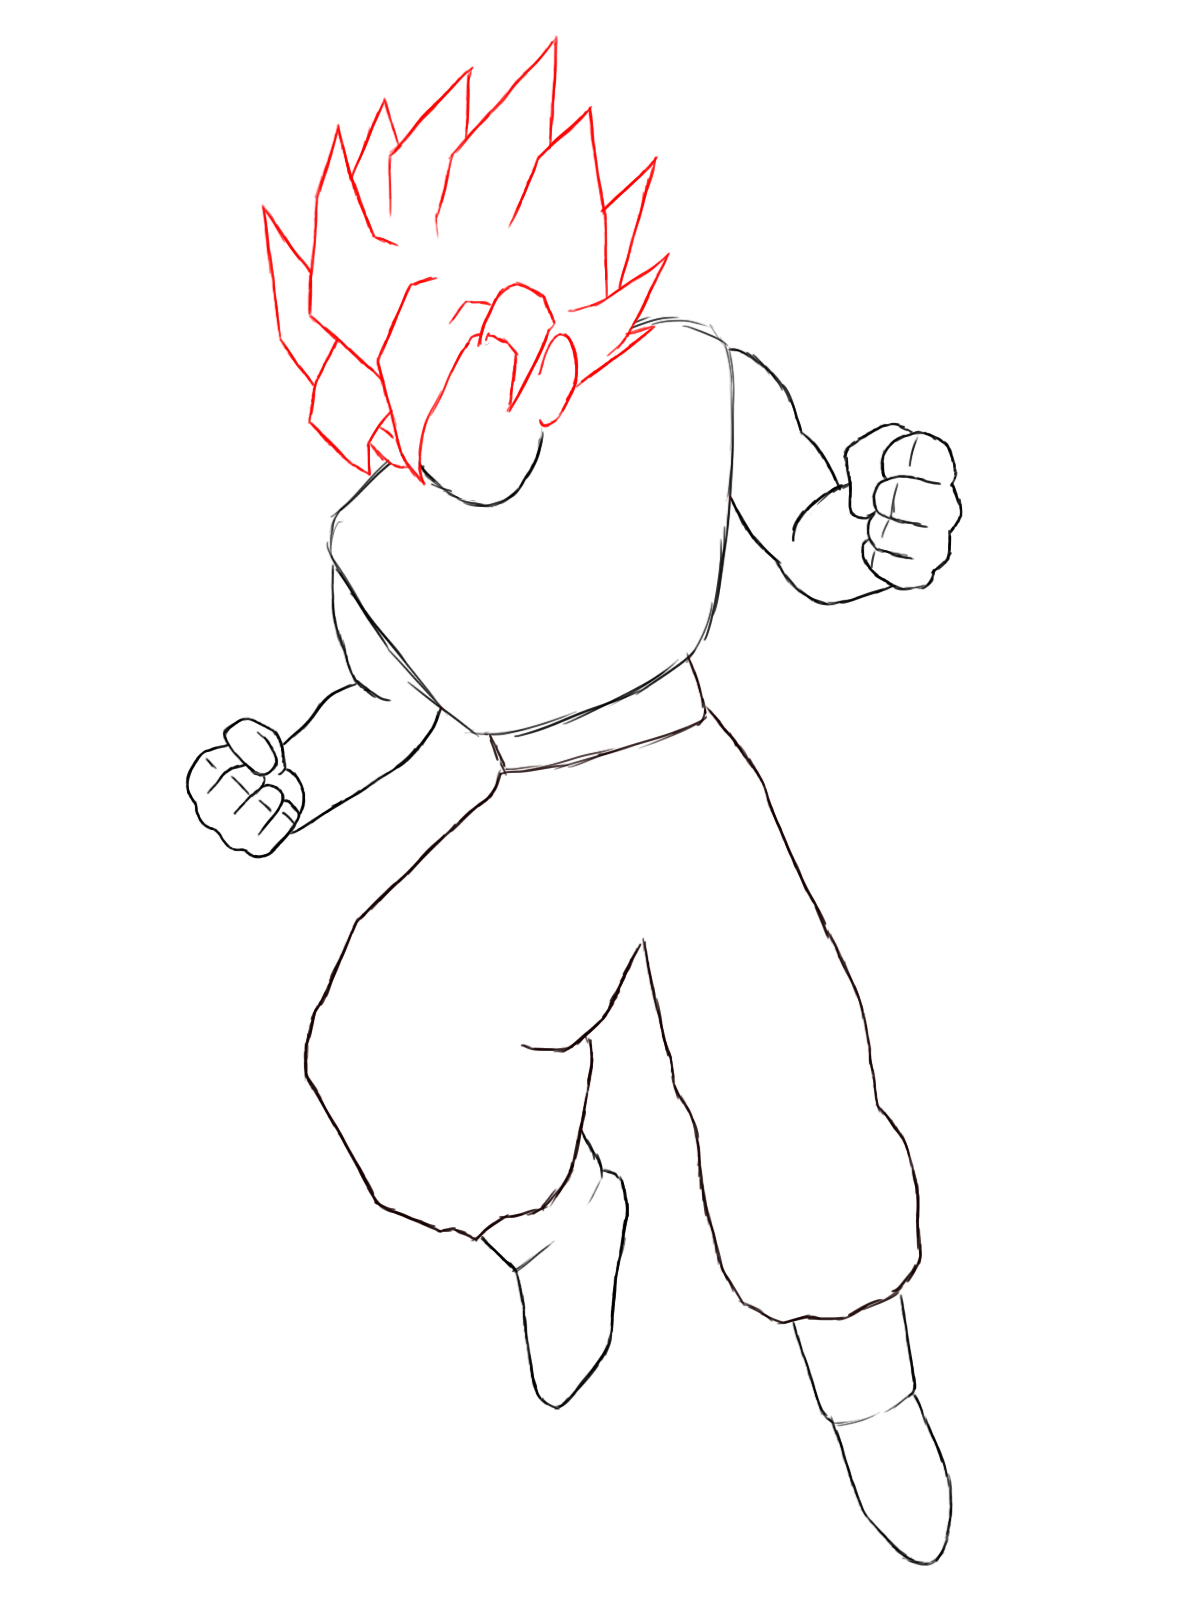 How To Draw Goku - Draw Central